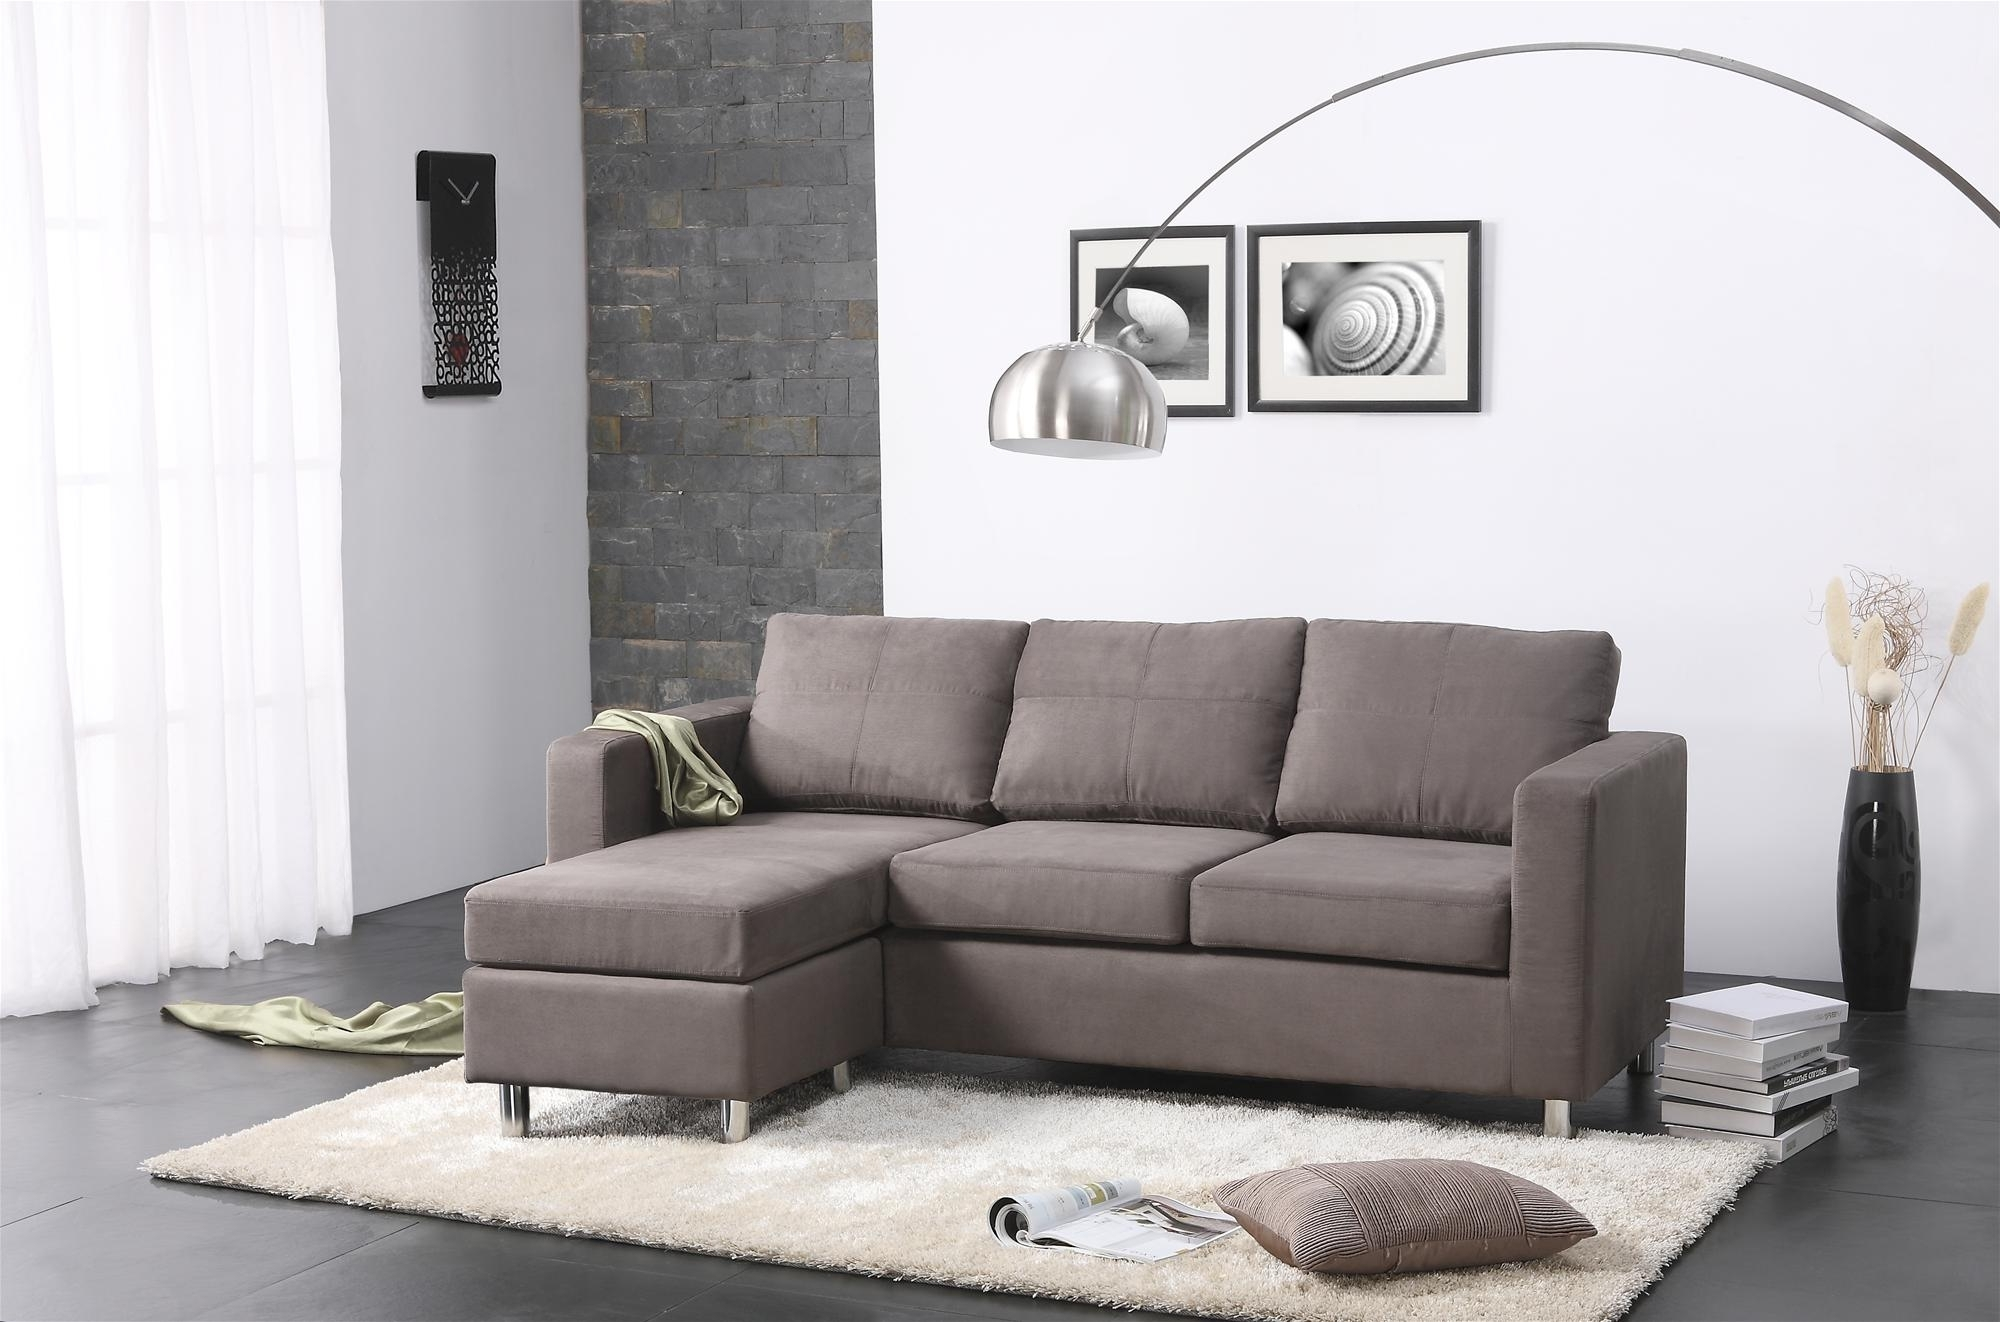 Fashionable Fancy Sectional Sofa For Small Spaces 46 For Contemporary Sofa Intended For Sectional Sofas In Small Spaces (View 9 of 20)